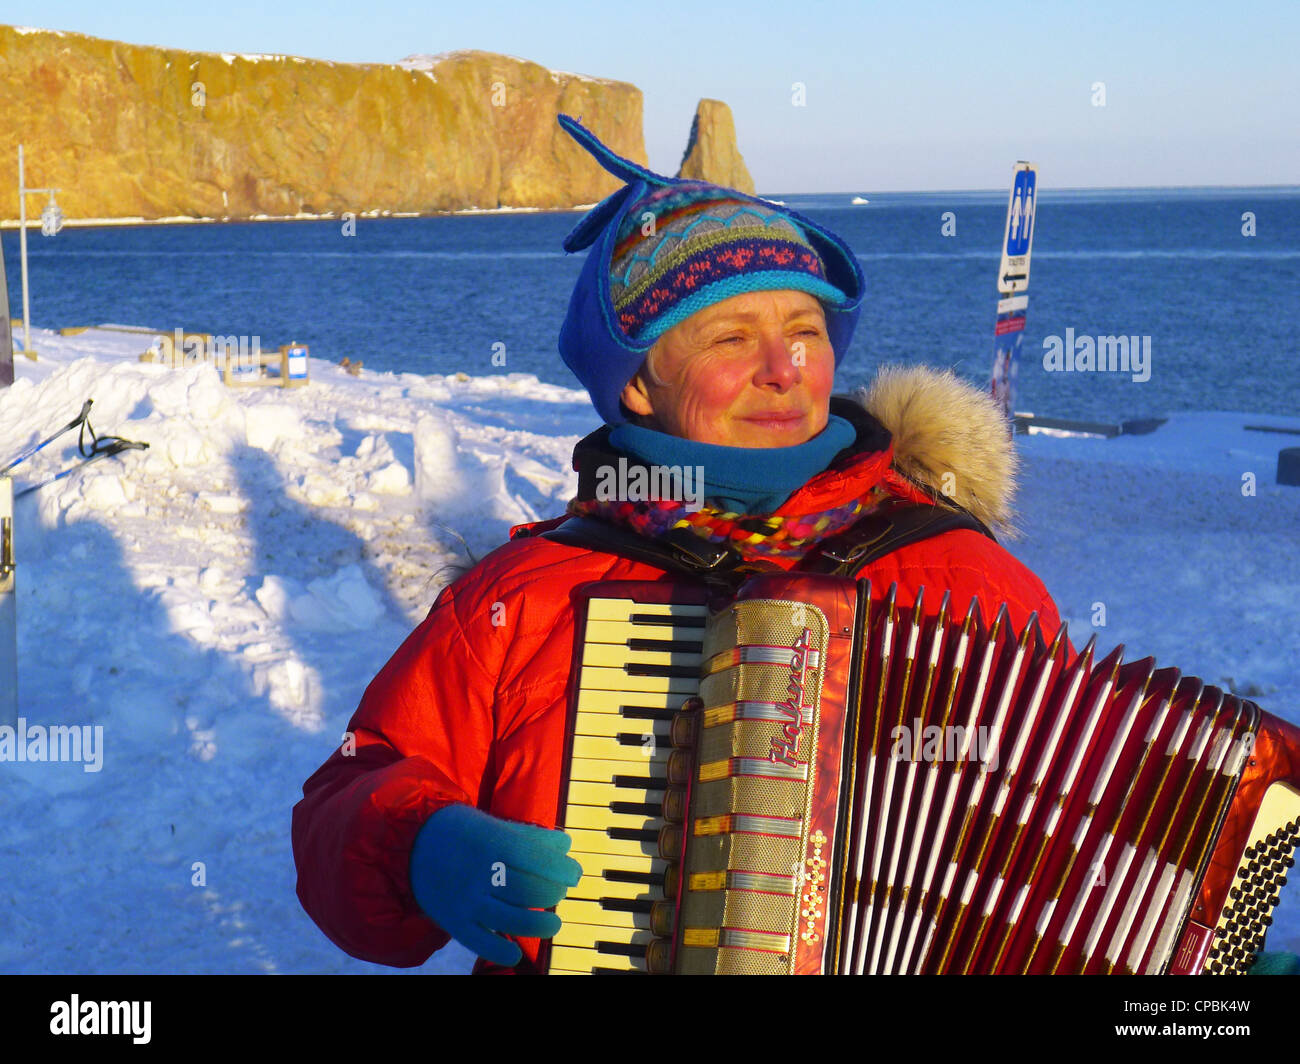 a-lady-playing-the-accordion-outside-in-